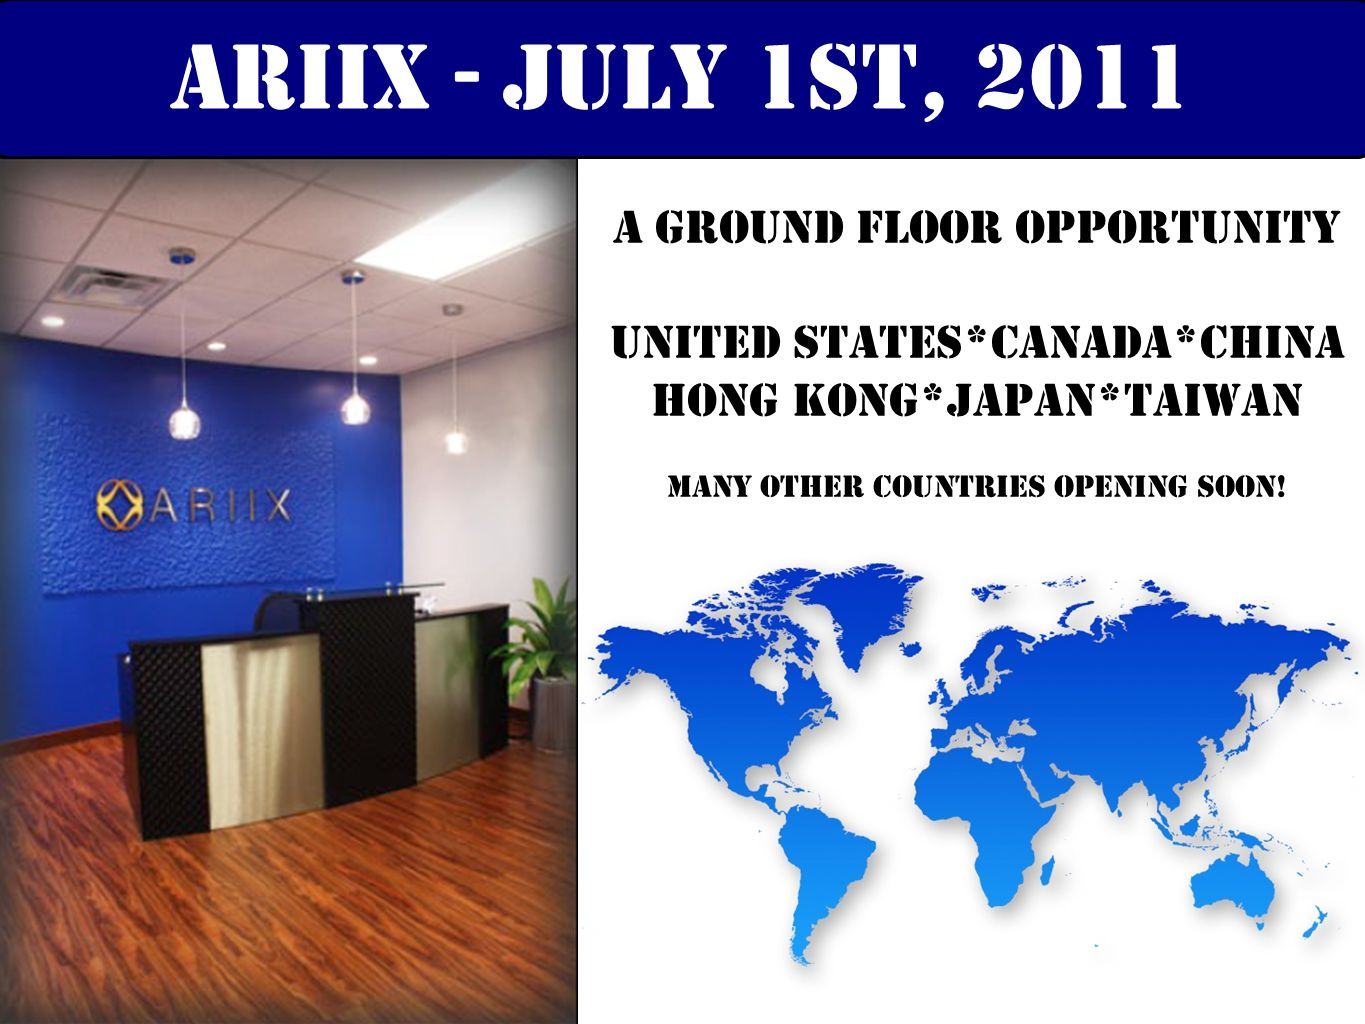 A Ground Floor Opportunity United States*CanadA*China Hong Kong*Japan*Taiwan many other countries opening soon! ariix - july 1st, 2011